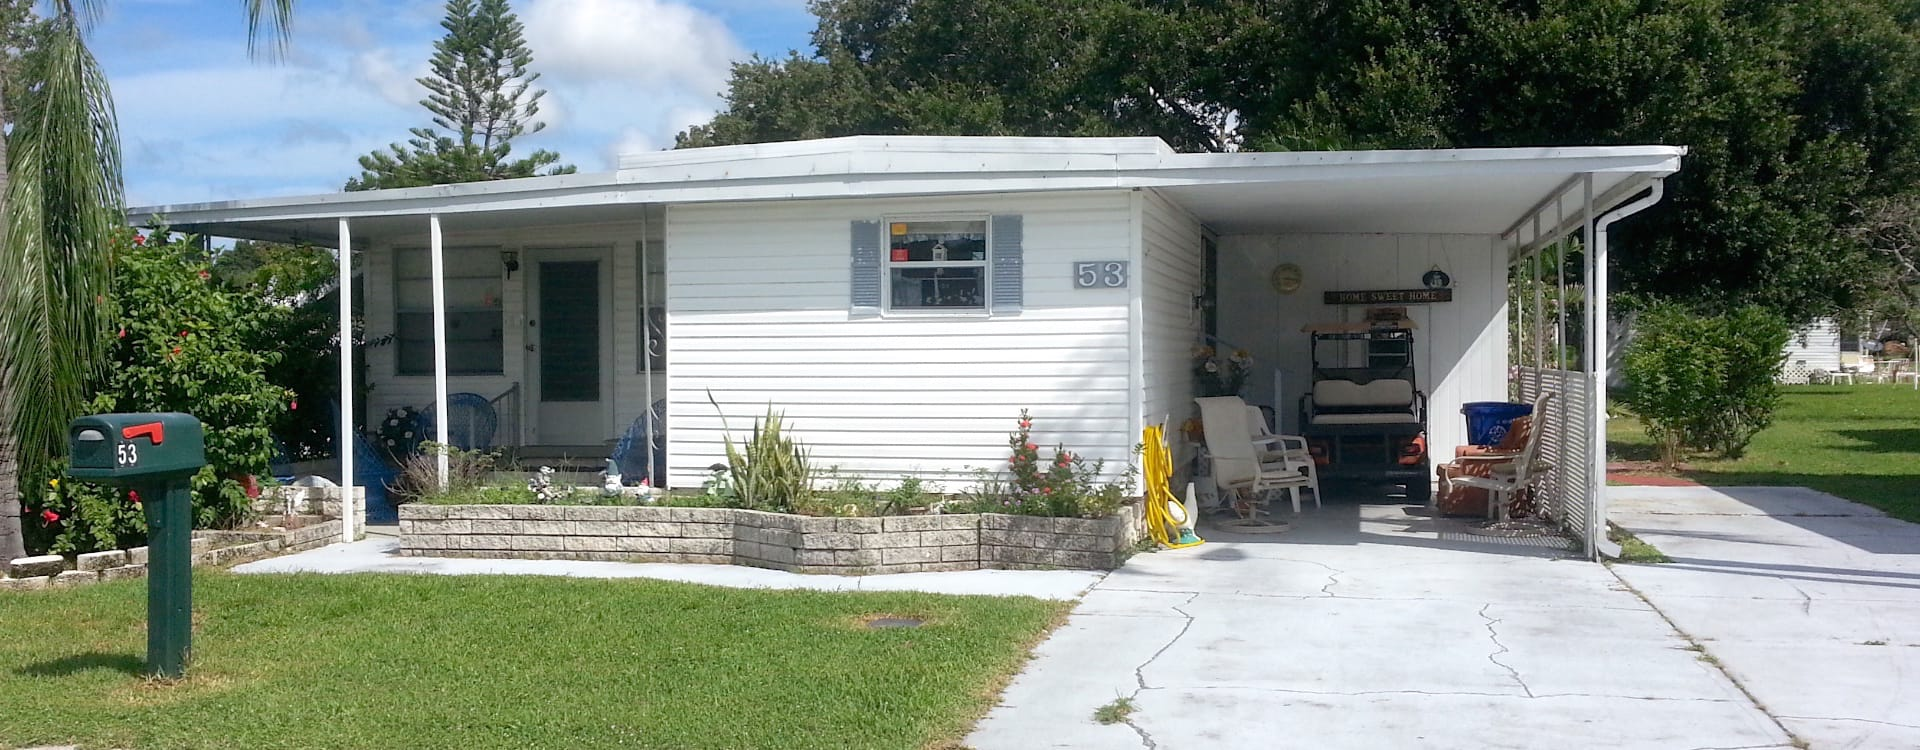 Mobile home for sale dunedin fl lone pine 53 - How long do modular homes last ...